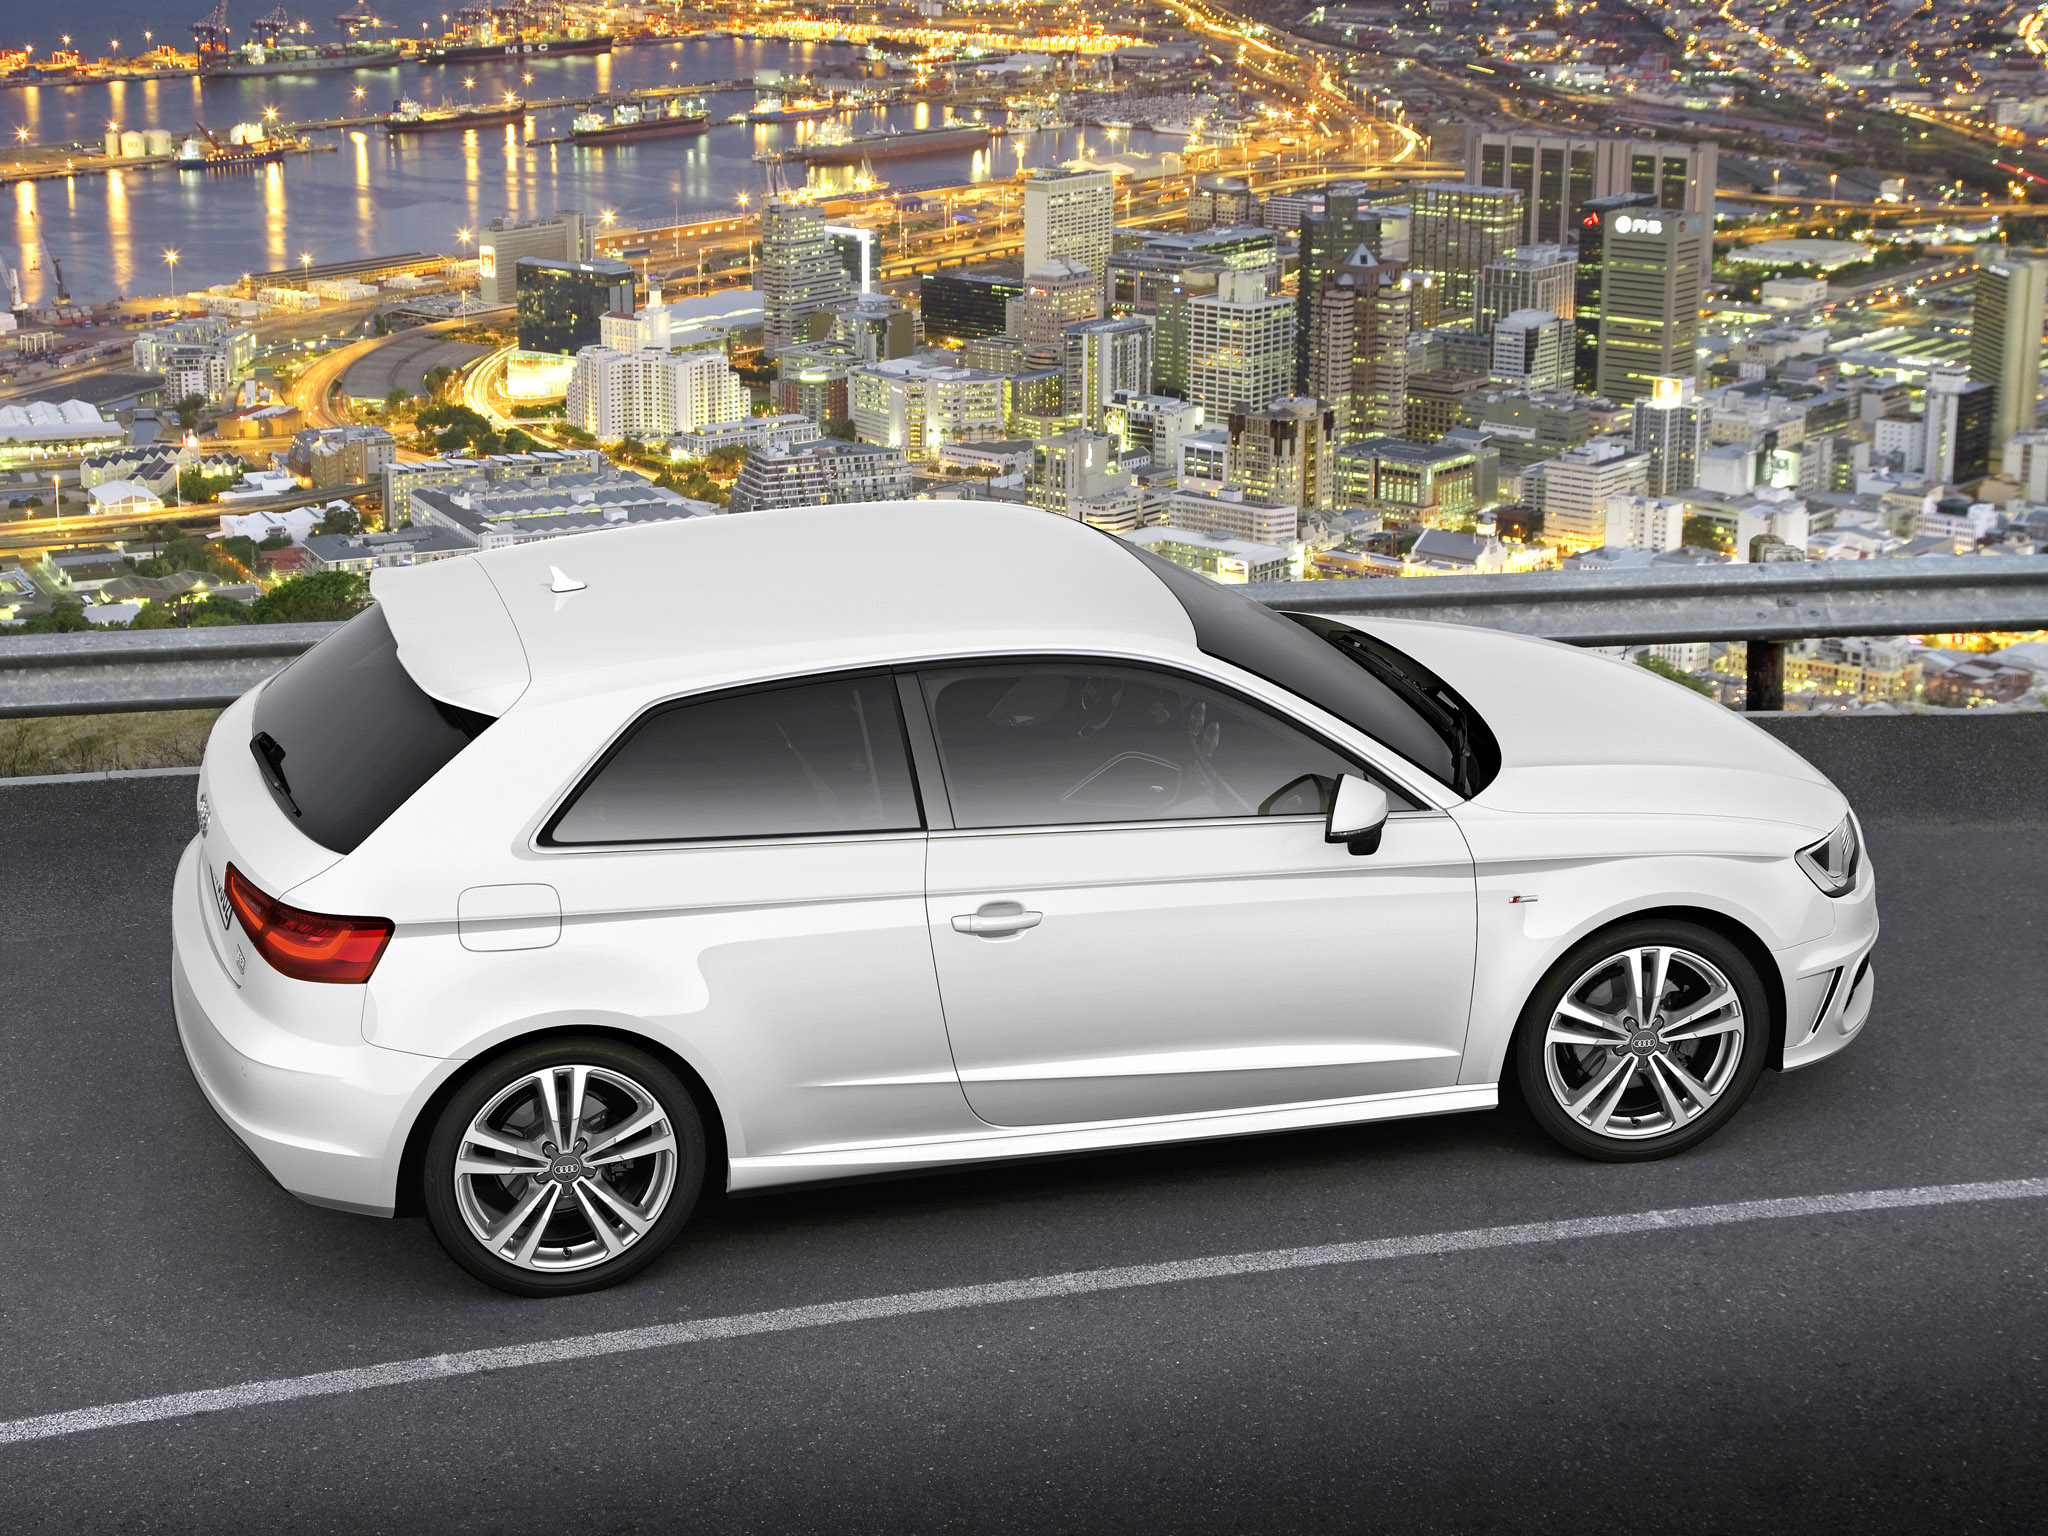 audi a3 1 8t s line 2012 audi a3 1 8t s line 2012 photo 05 car in pictures car photo gallery. Black Bedroom Furniture Sets. Home Design Ideas